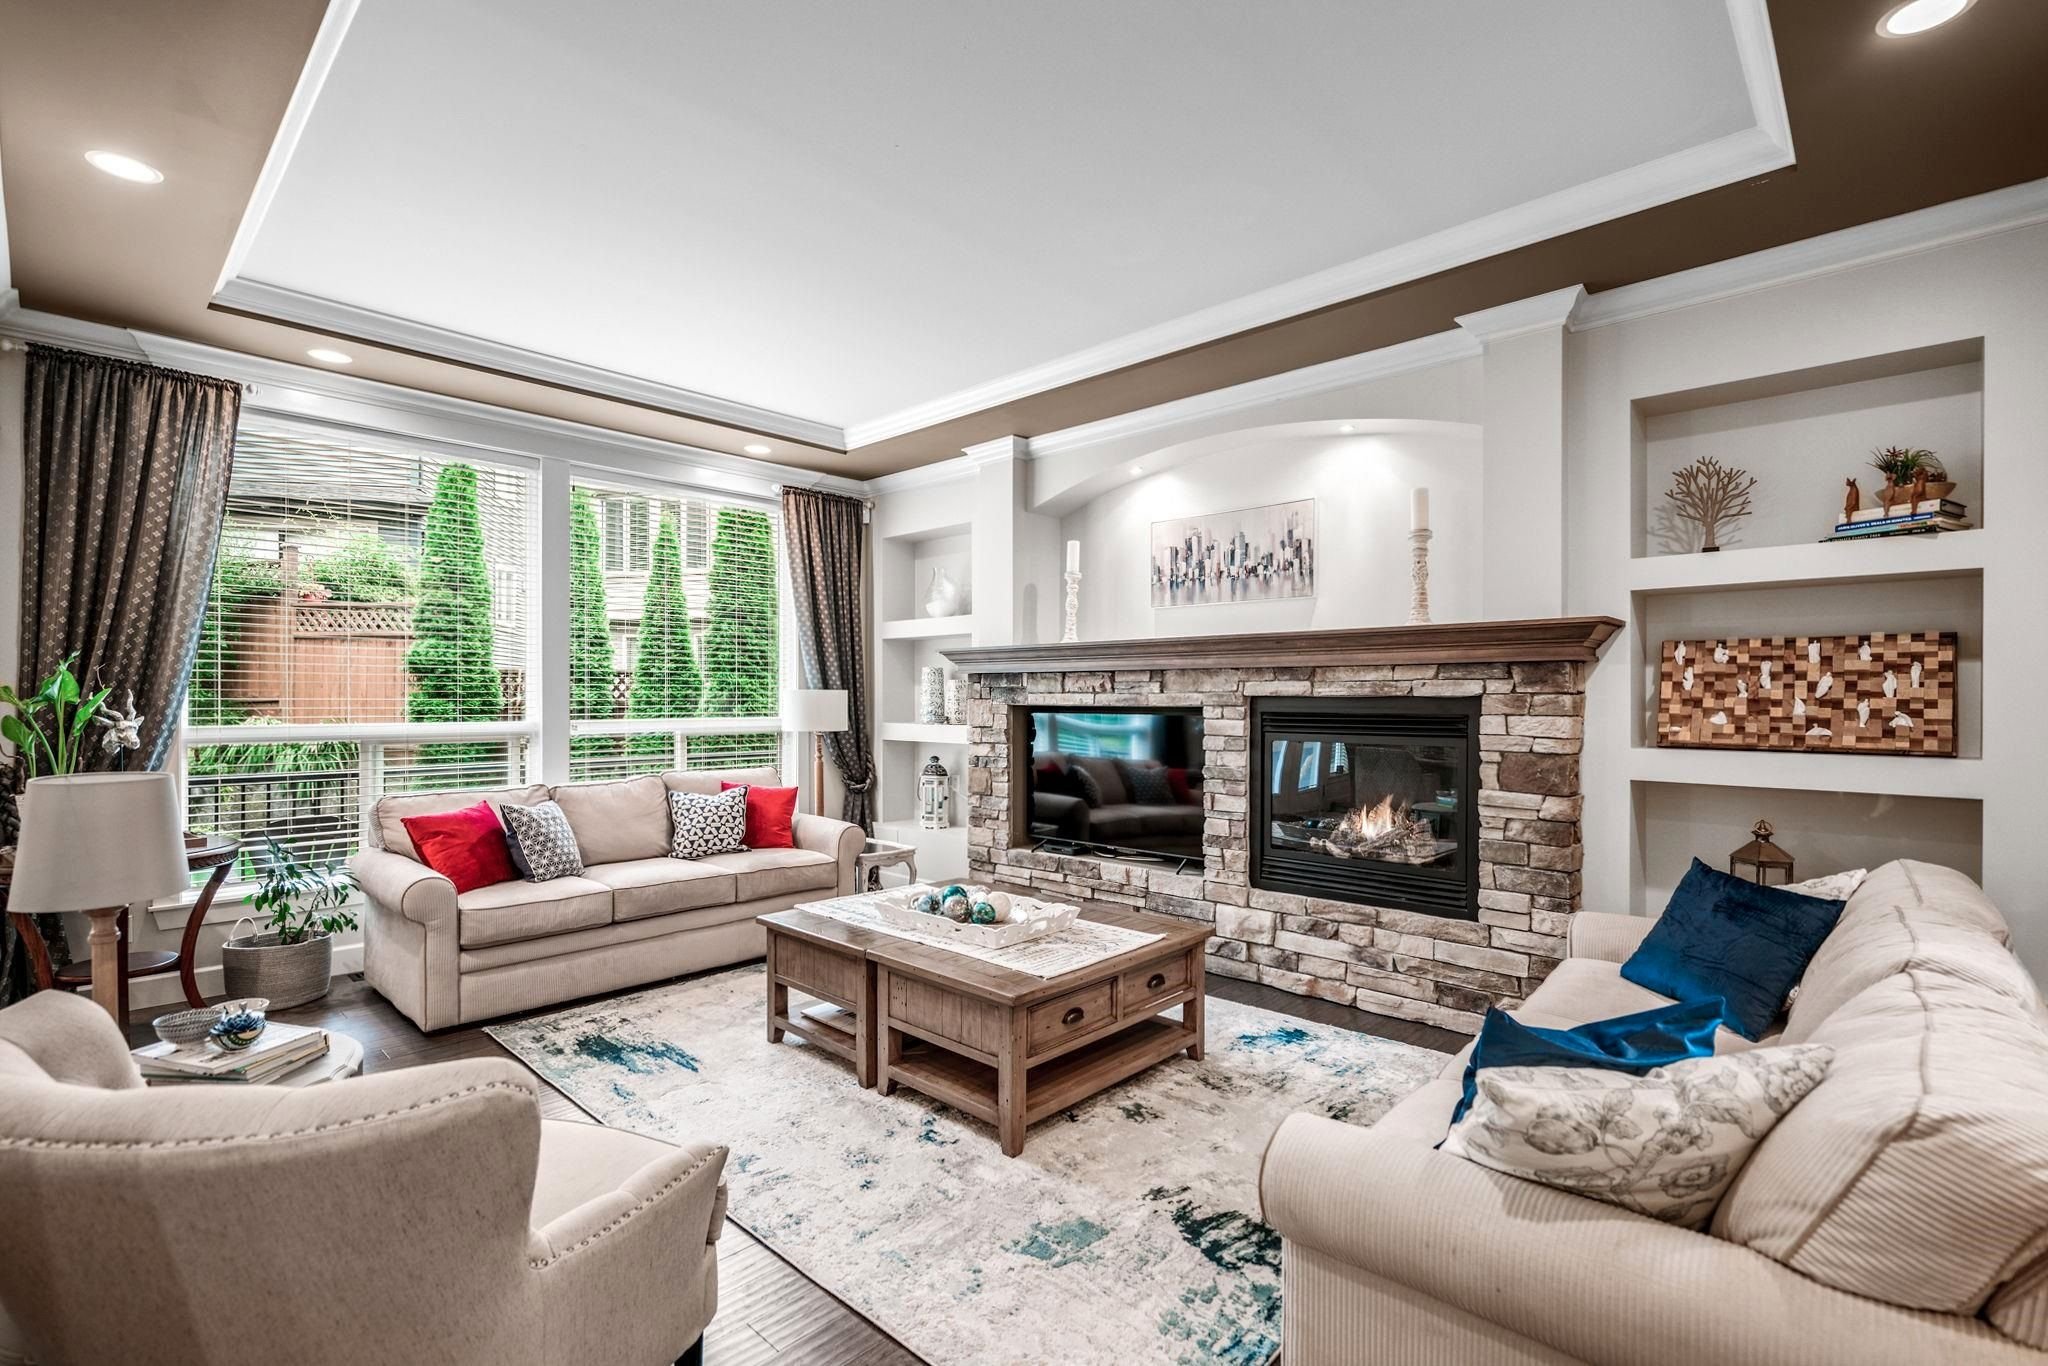 Main Photo: 1485 DAYTON STREET in Coquitlam: Burke Mountain House for sale : MLS®# R2610419